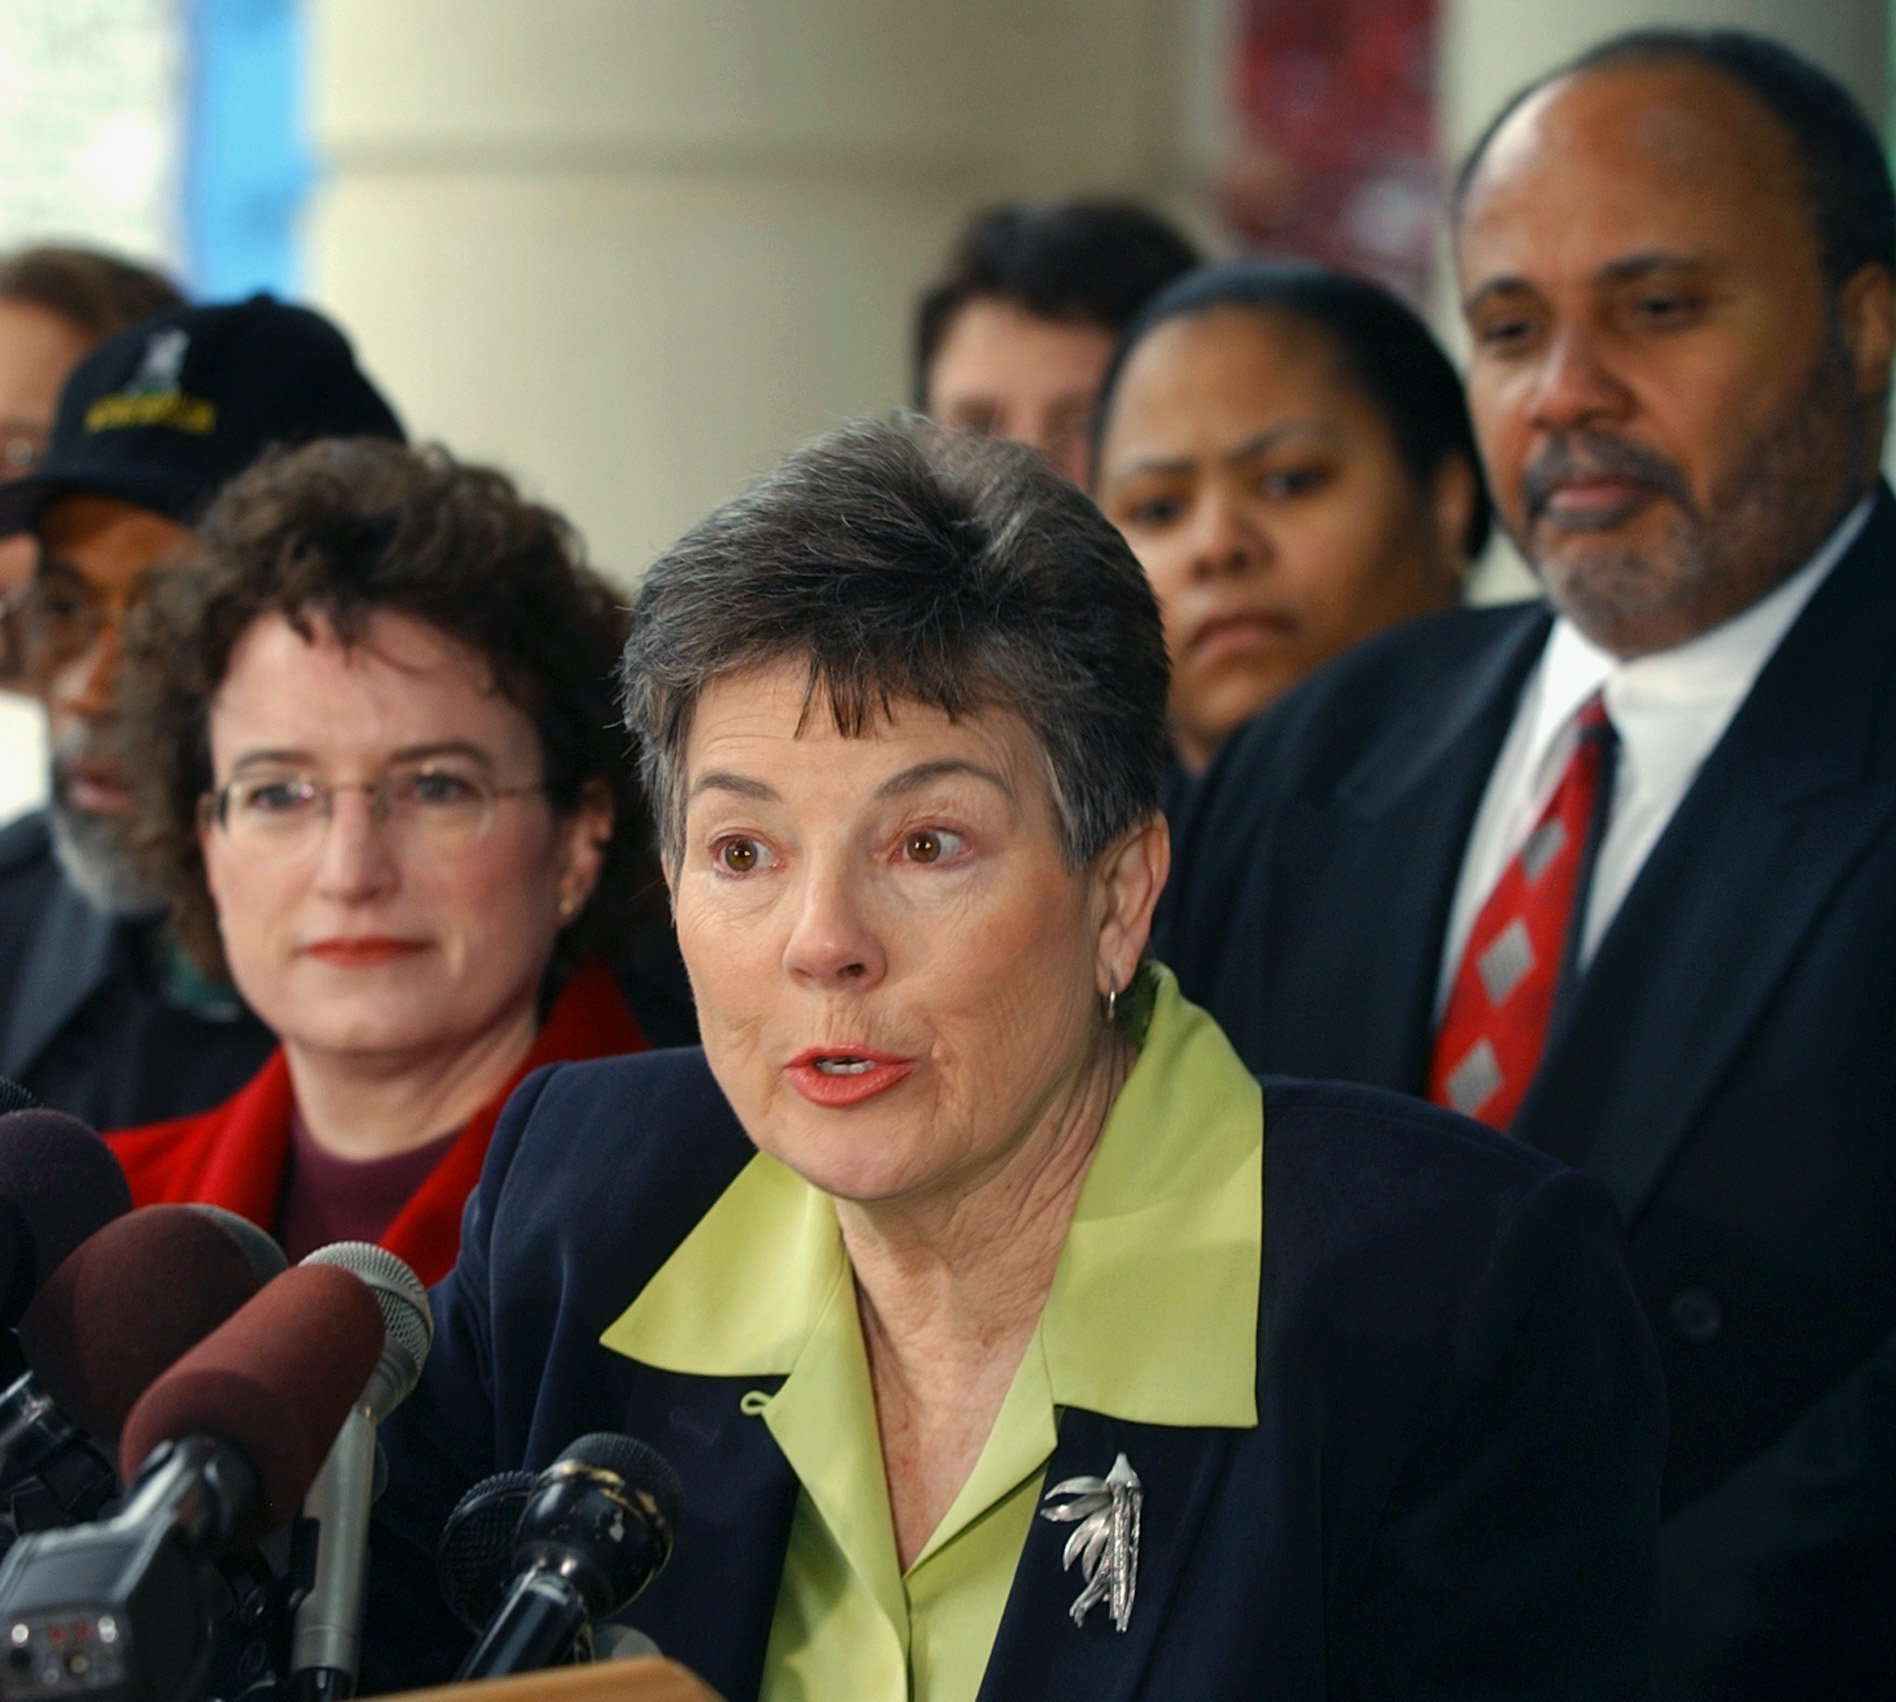 FILE - In this April 10, 2003, file photo, Martha Burk, center, chair of the National Council of Women's Organizations, speaks to media in Atlanta. Burk is back in golf, encouraging people to join a protest over the U.S. Women's Open being held next year